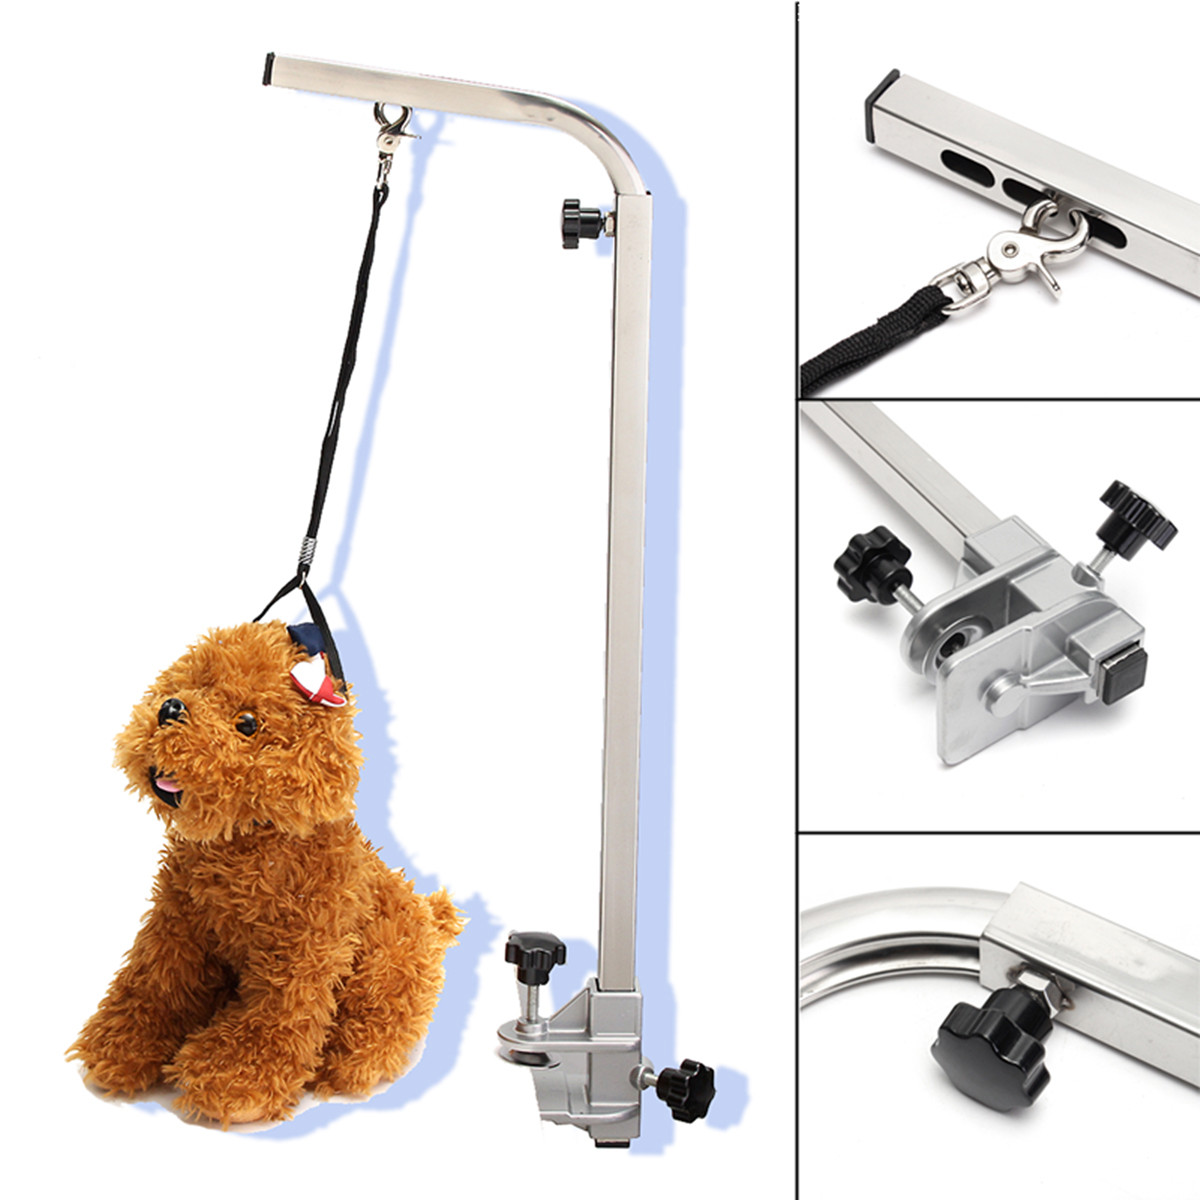 1PC Portable Adjustable Metal Table Arm Support Holder For Pet Dog Grooming Bath Table Desk